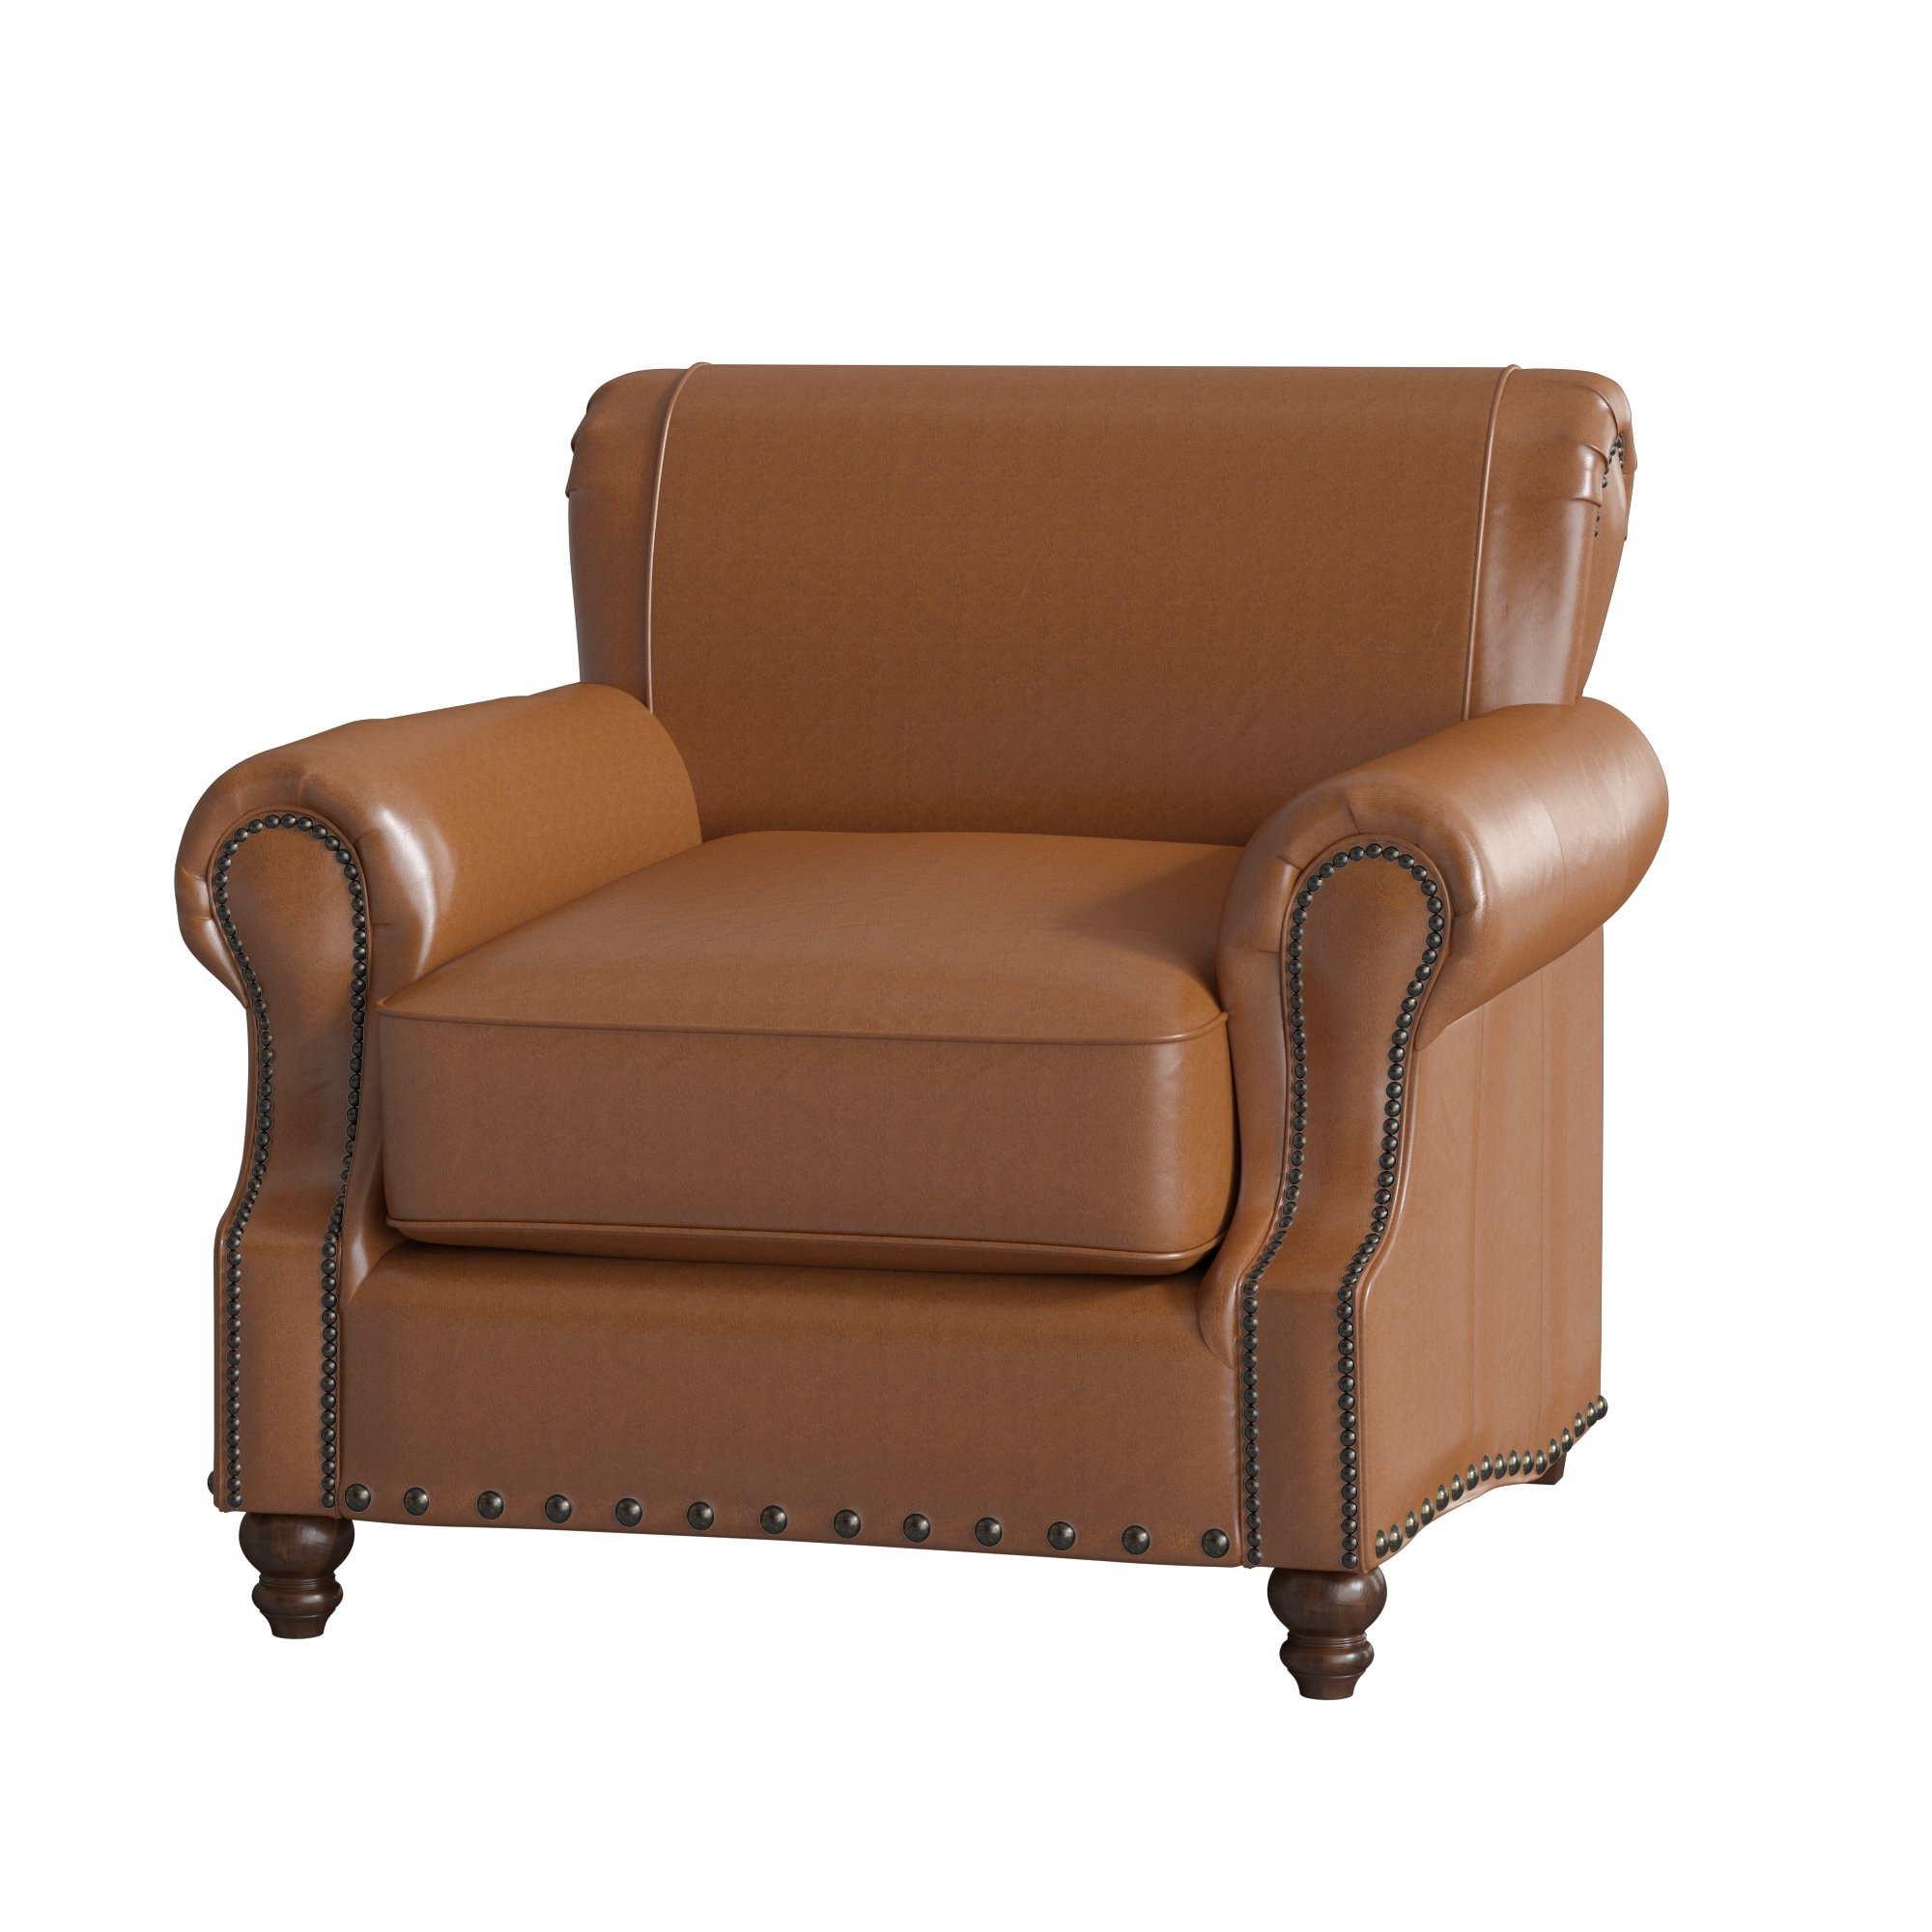 Widely Used Landry Sofa Chairs With Regard To Birch Lane™ Heritage Landry Club Chair & Reviews (View 14 of 20)